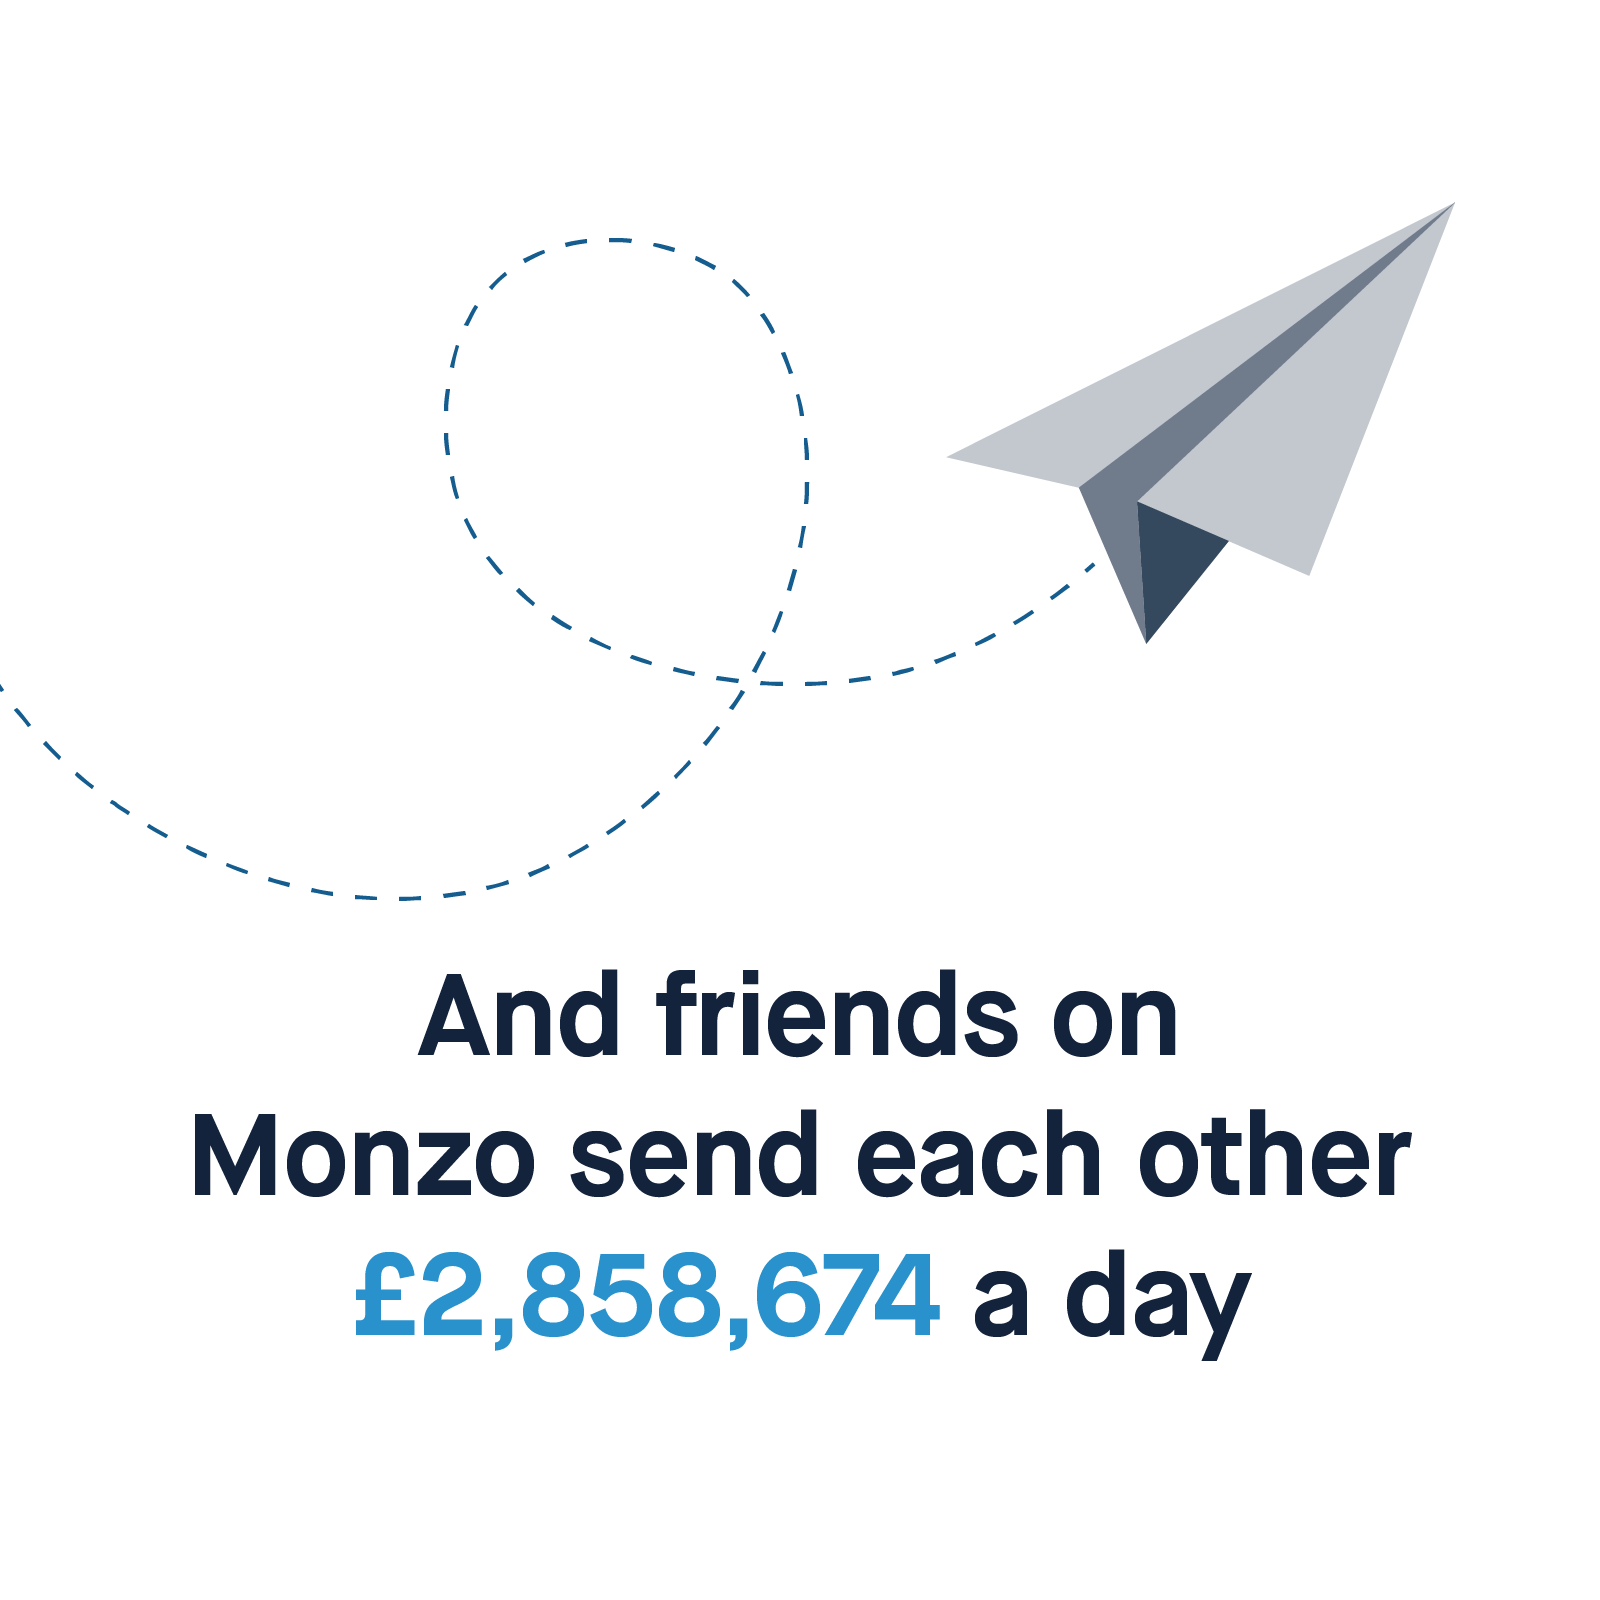 And friends on Monzo send each other £2,858,674 a day